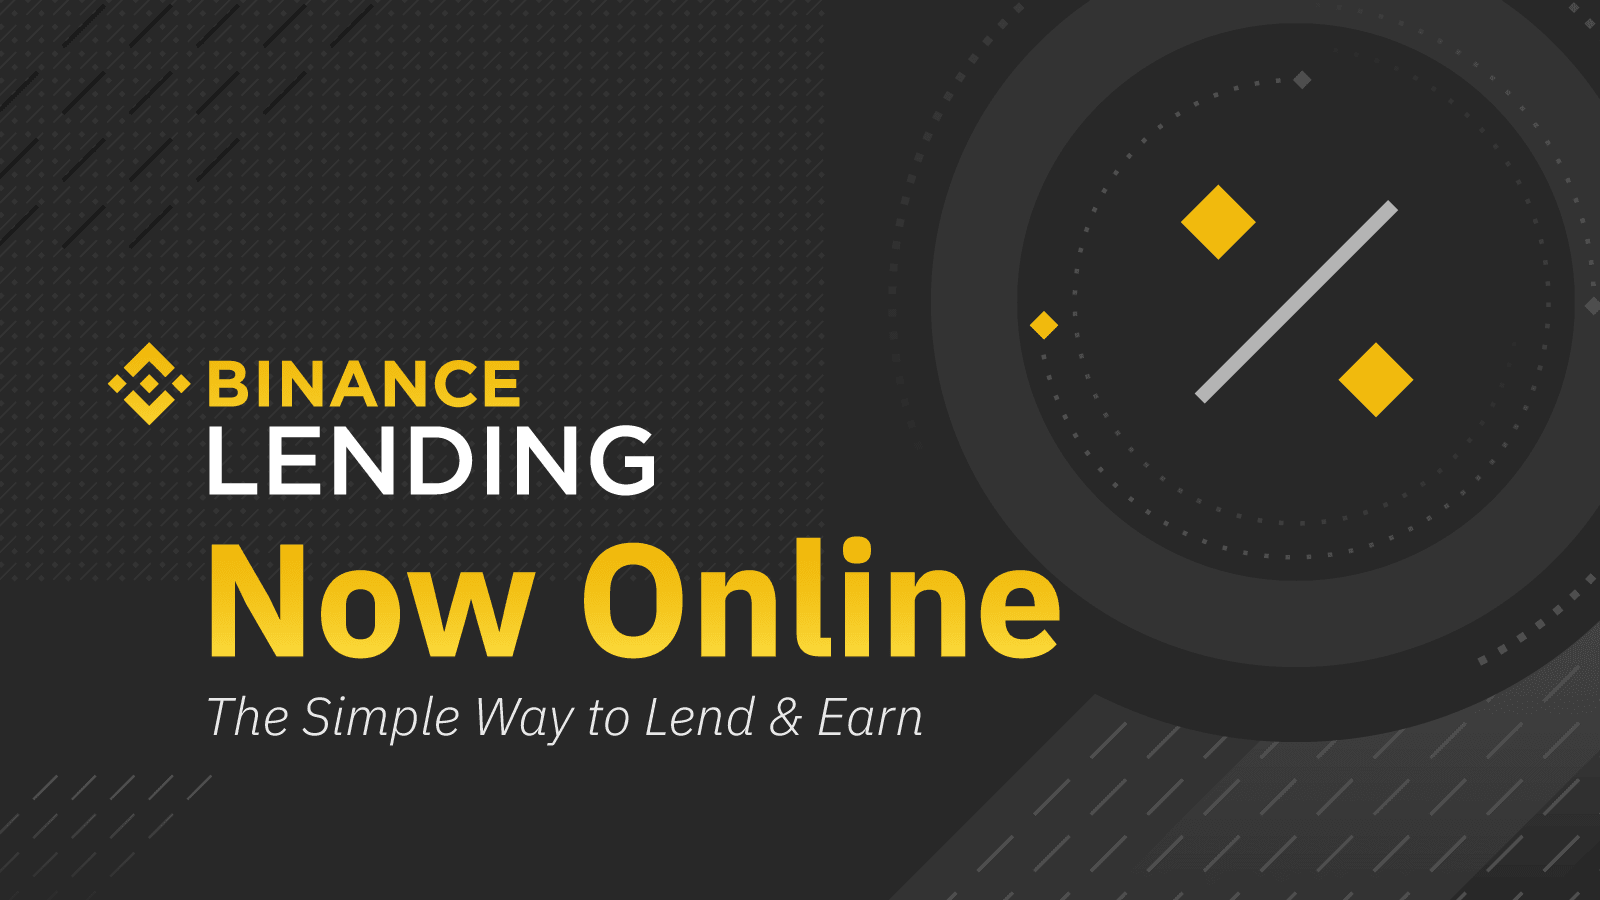 Binance Launches Cryptocurrency Lending Products, Expanding Offerings  Beyond Trading   Binance Blog